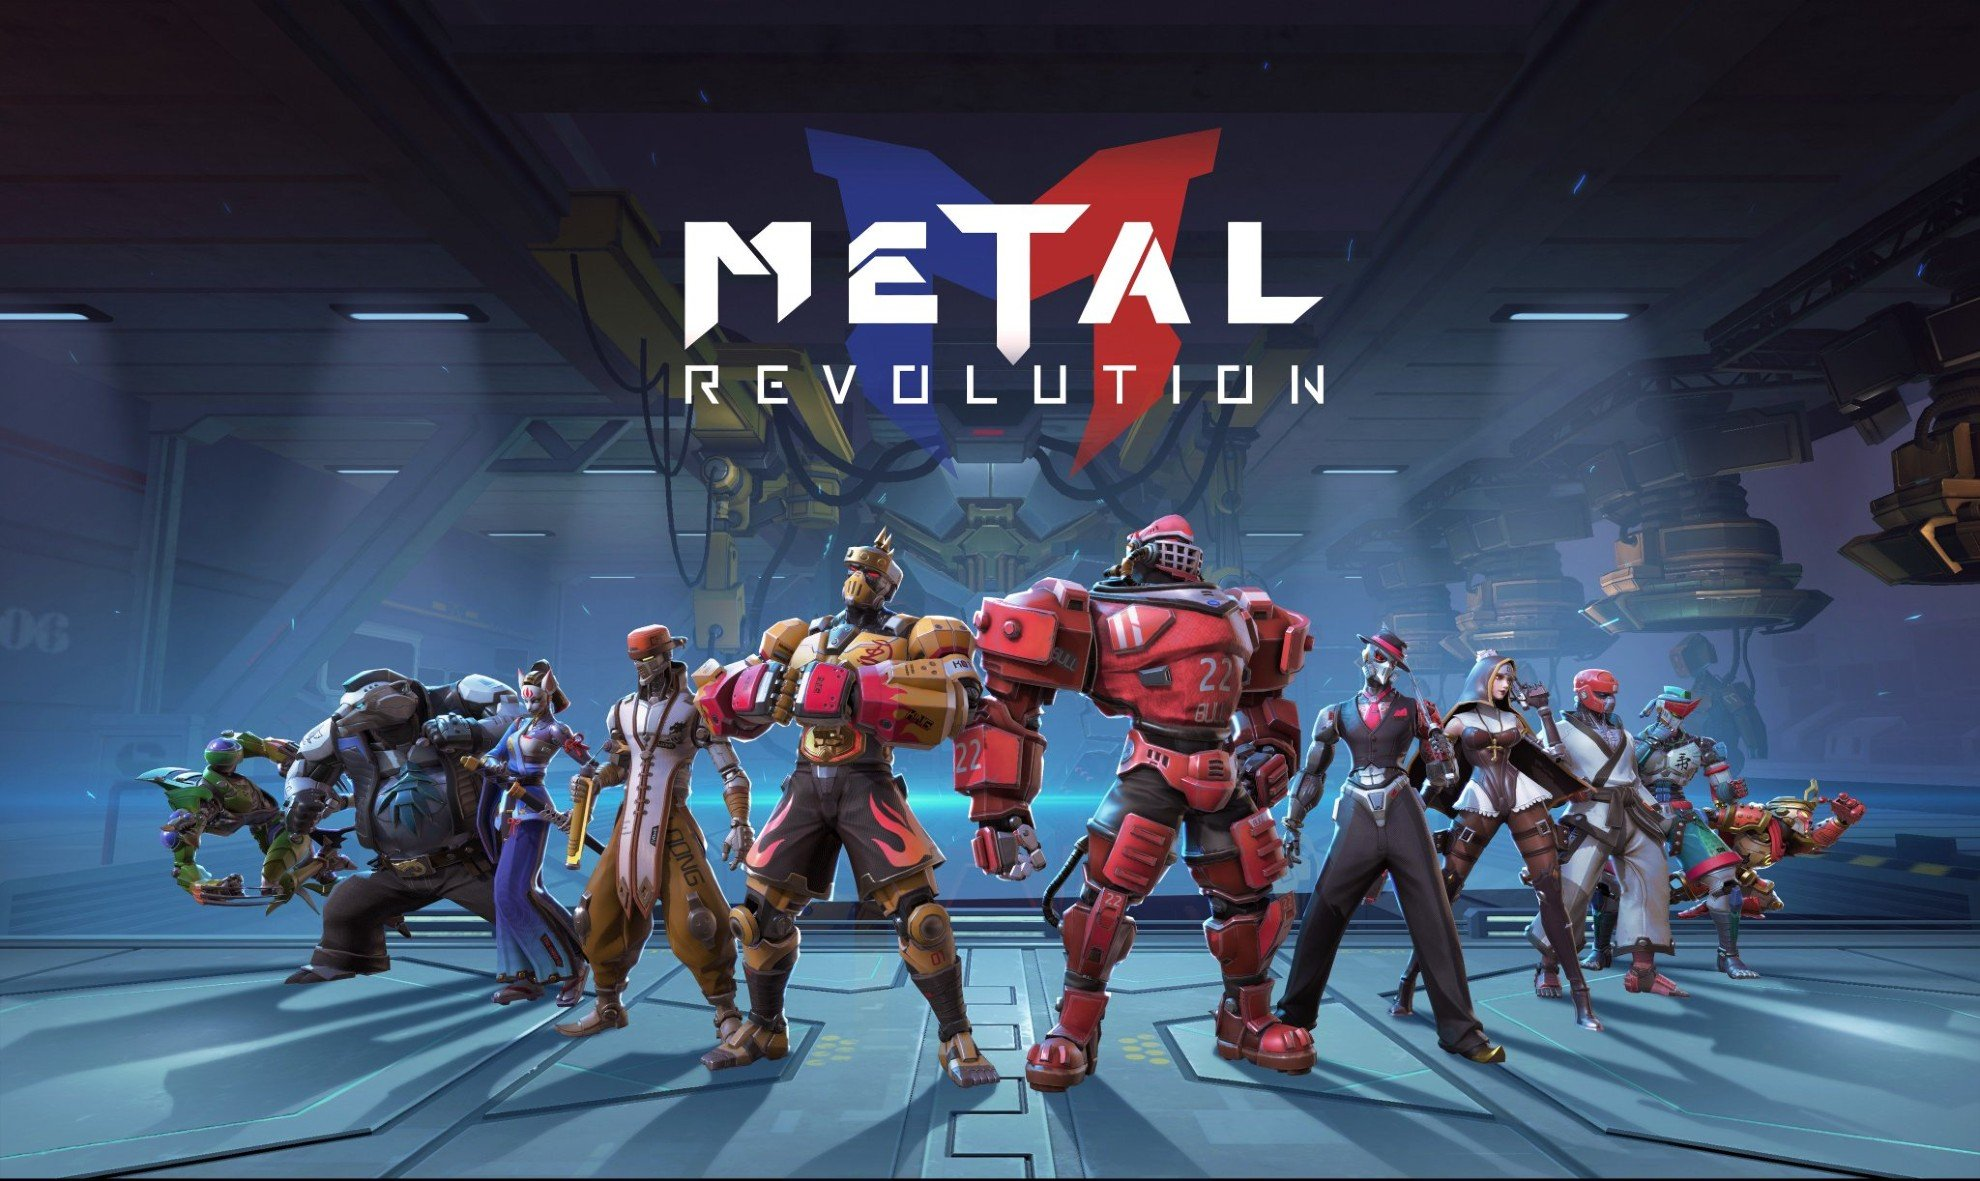 Fighting Game Metal Revolution Gets a Stylish New Trailer